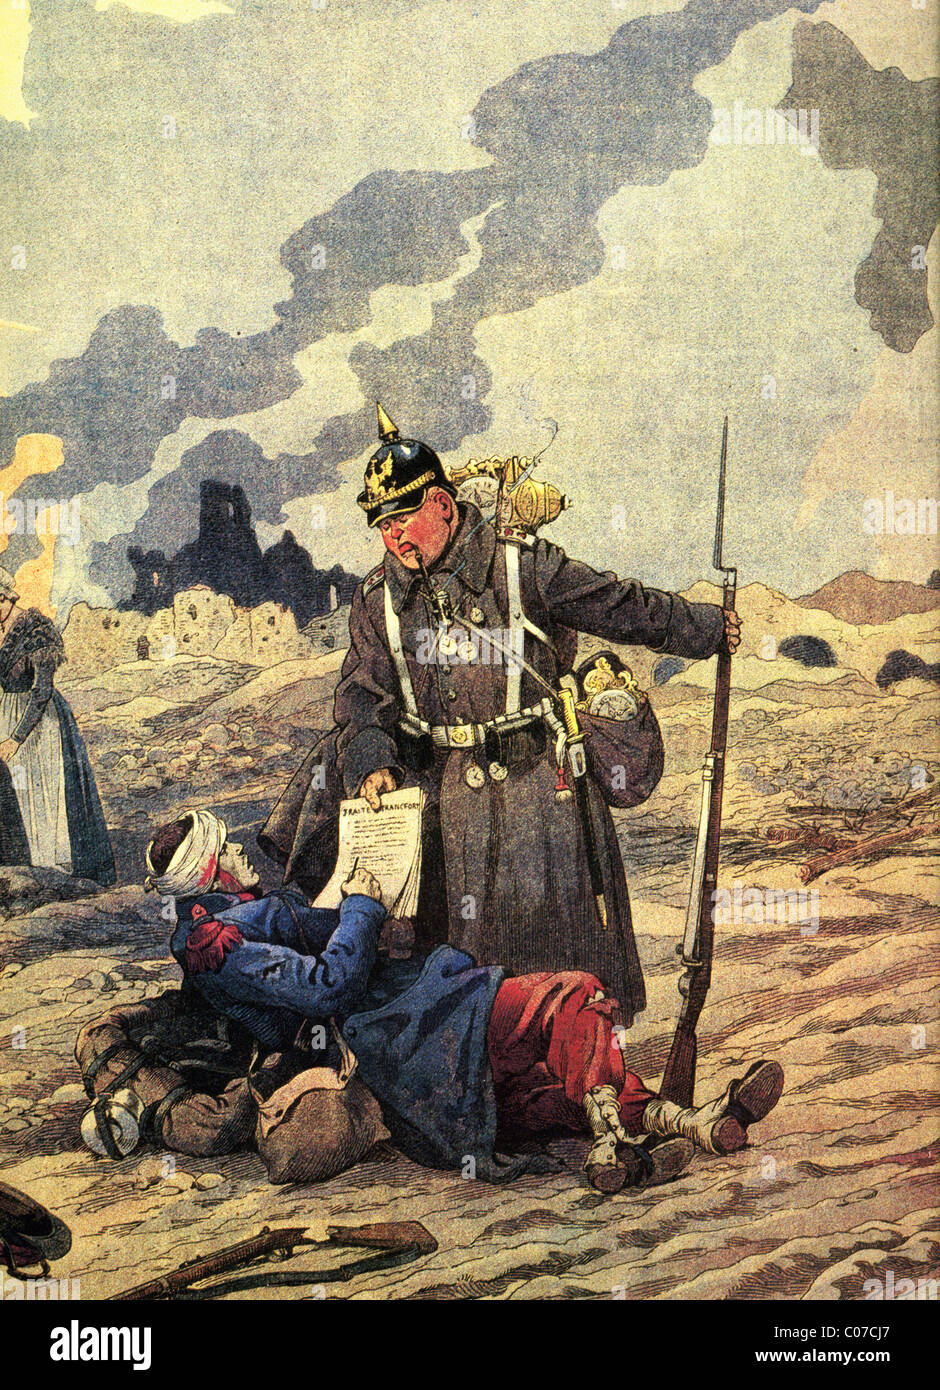 JOB (Jacques Onfroy de Breville) - French illustrator (1858 - 1931) First World War - 1914-1918: The Treaty of Frankfurt - Stock Image